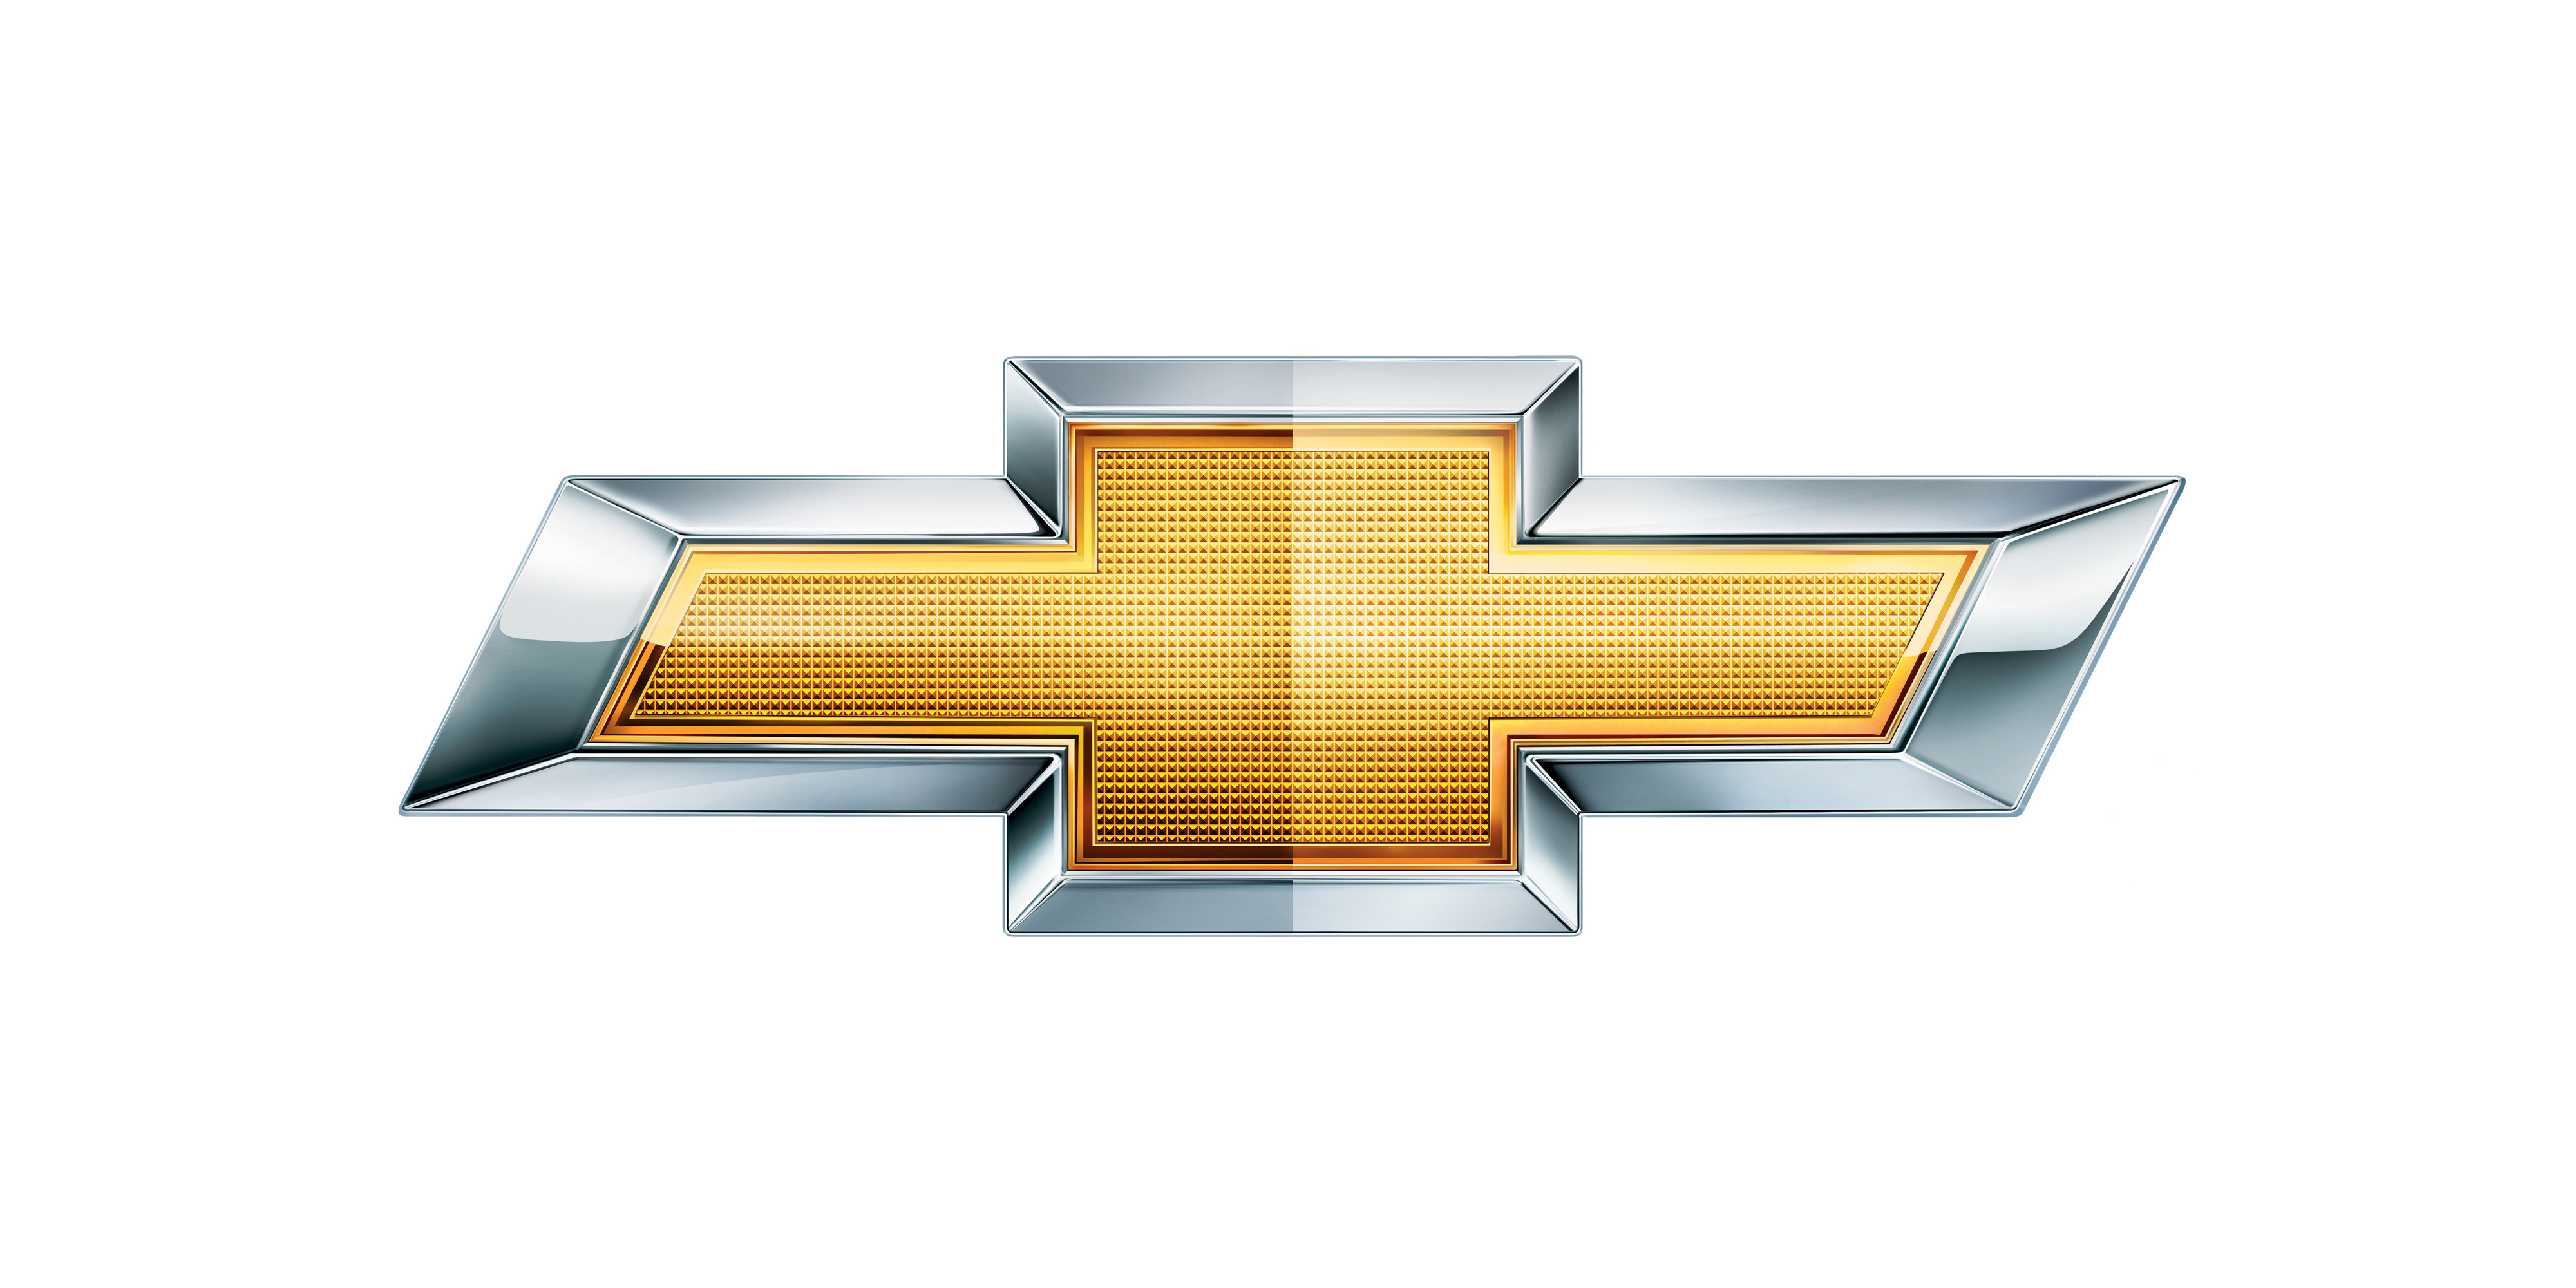 Chevy Logo, Chevrolet Car Symbol Meaning and History.